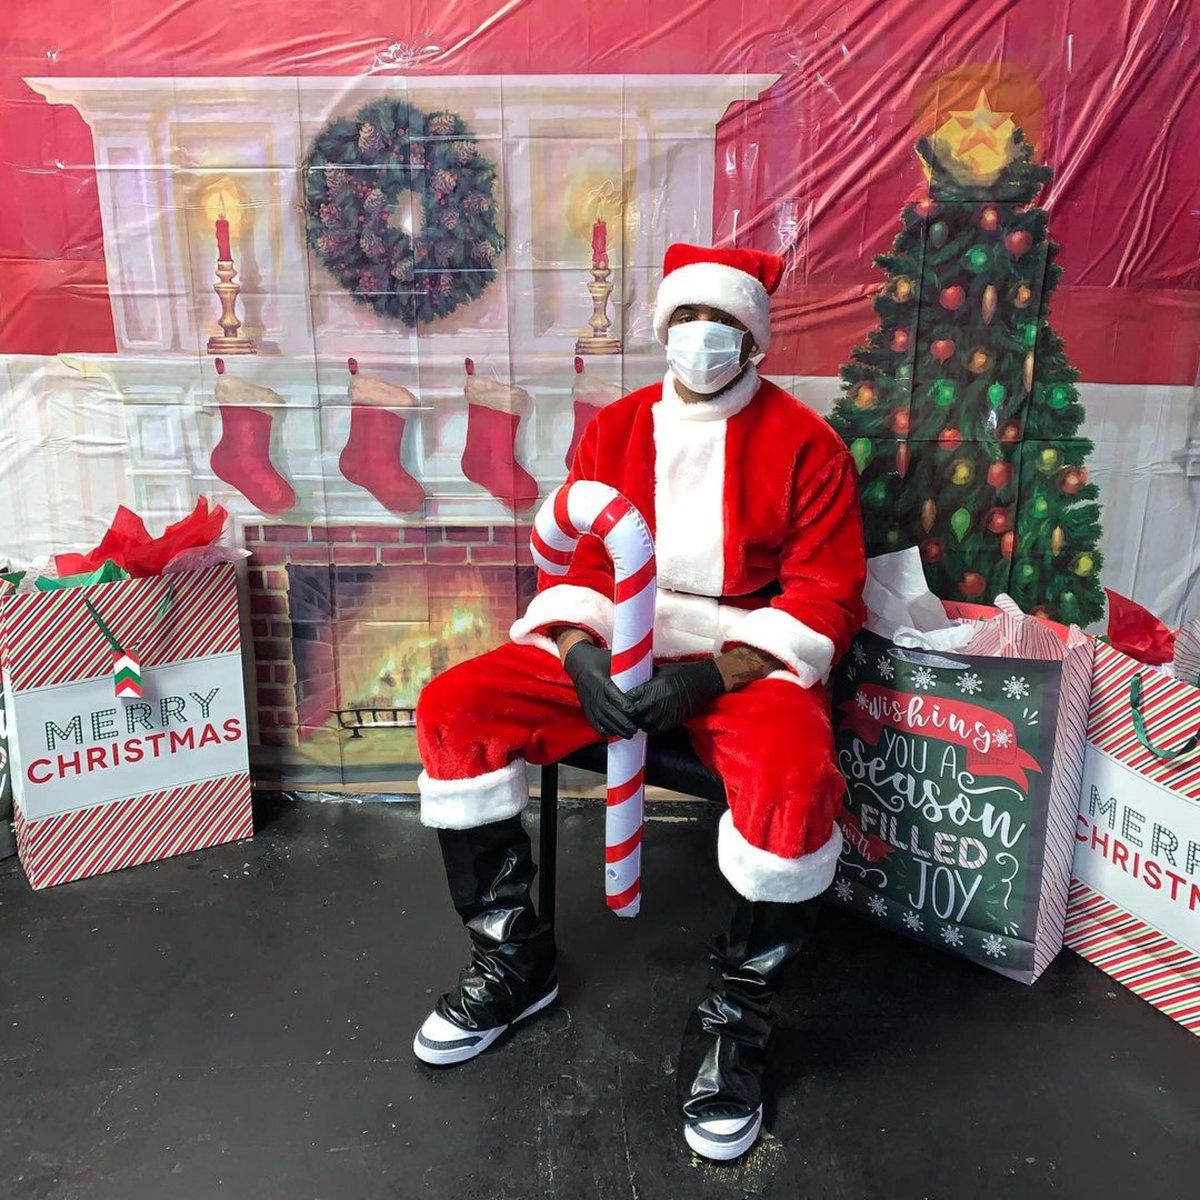 "#FlashbackFriday ""Ezzy Clause"" was in town giving away gifts 🎁 #theezzyway I truly enjoy doing this every year giving back in the same streets I once hustled and ran in🤞🏽🤟🏽😎💯 #blackexcellence✊🏾 #growth #positivevibesonly✨ #rolemodel #merrychristmas #givingbacktomycommunity"